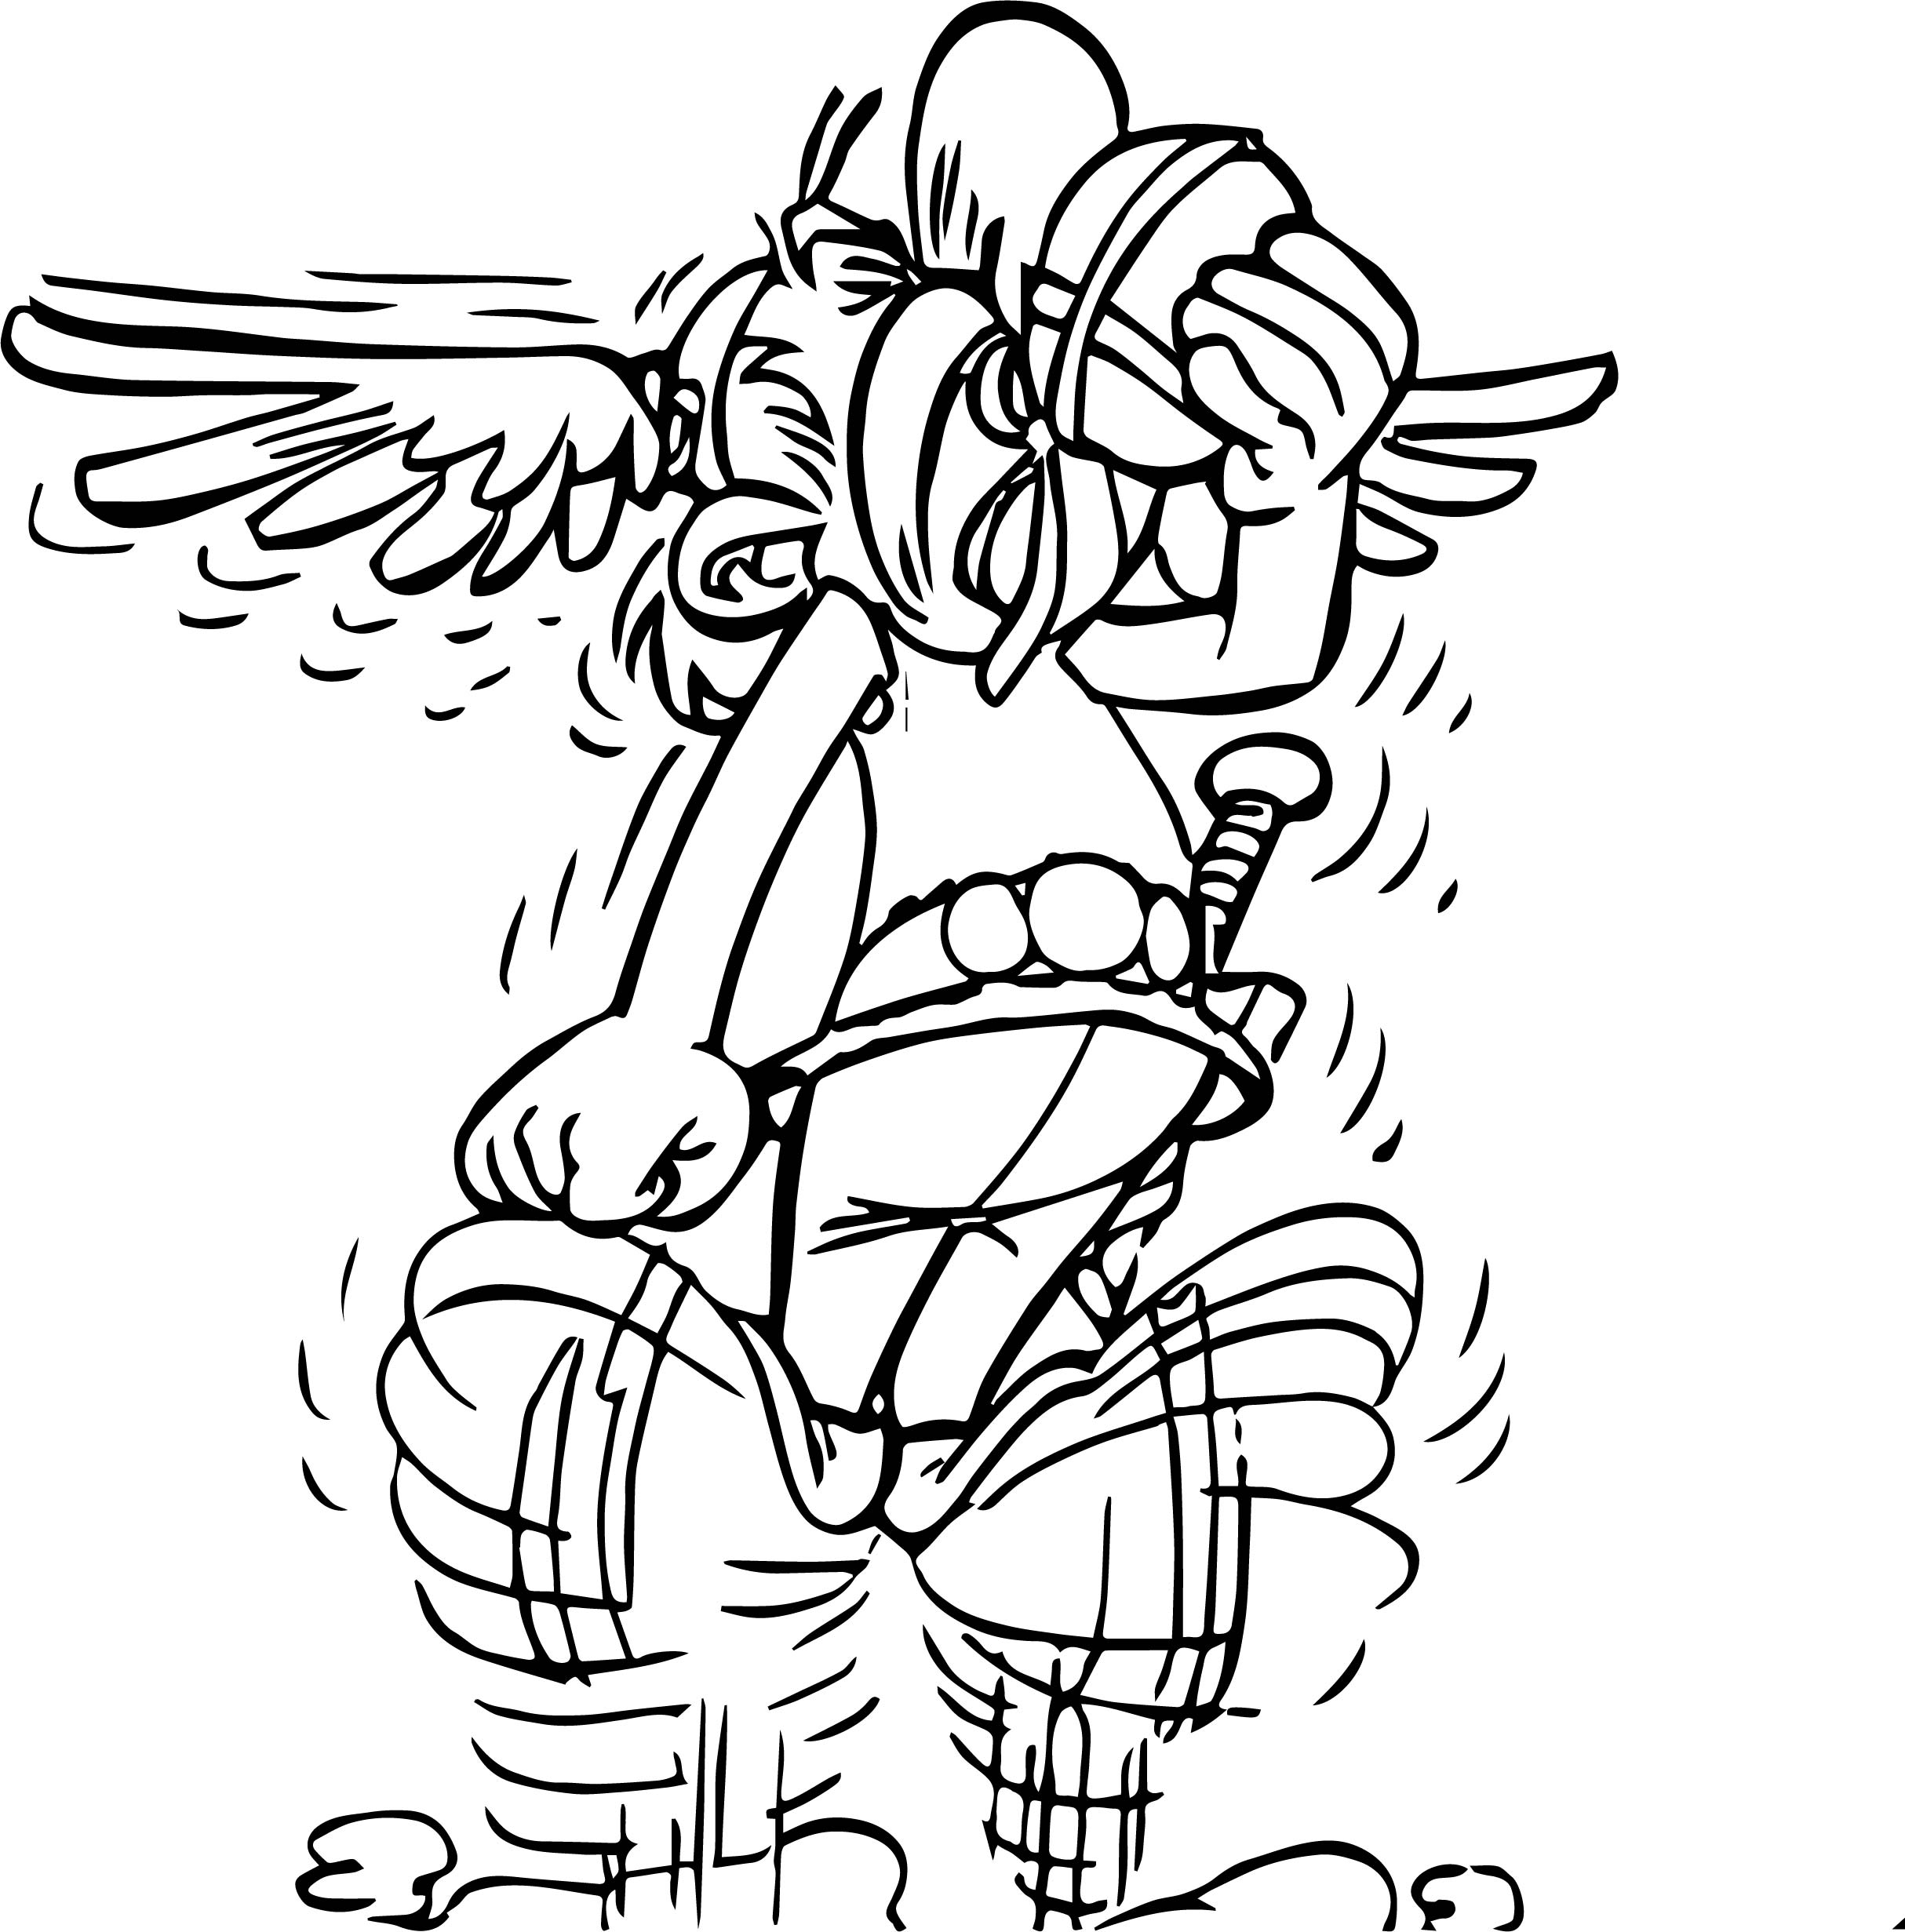 Asterix Total Retaliation Coloring Page